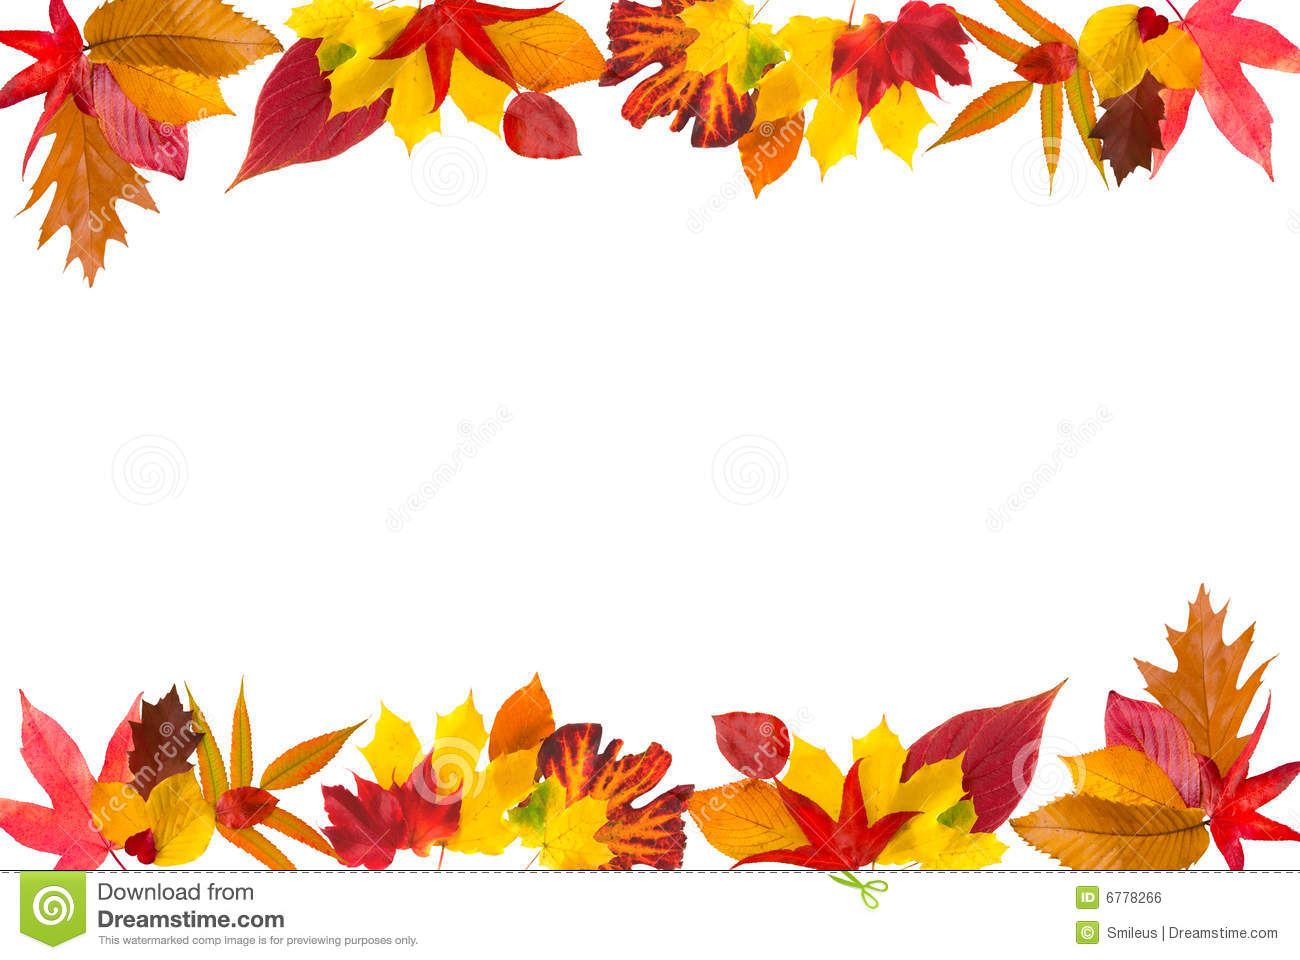 2019 year look- Leaves Fall border